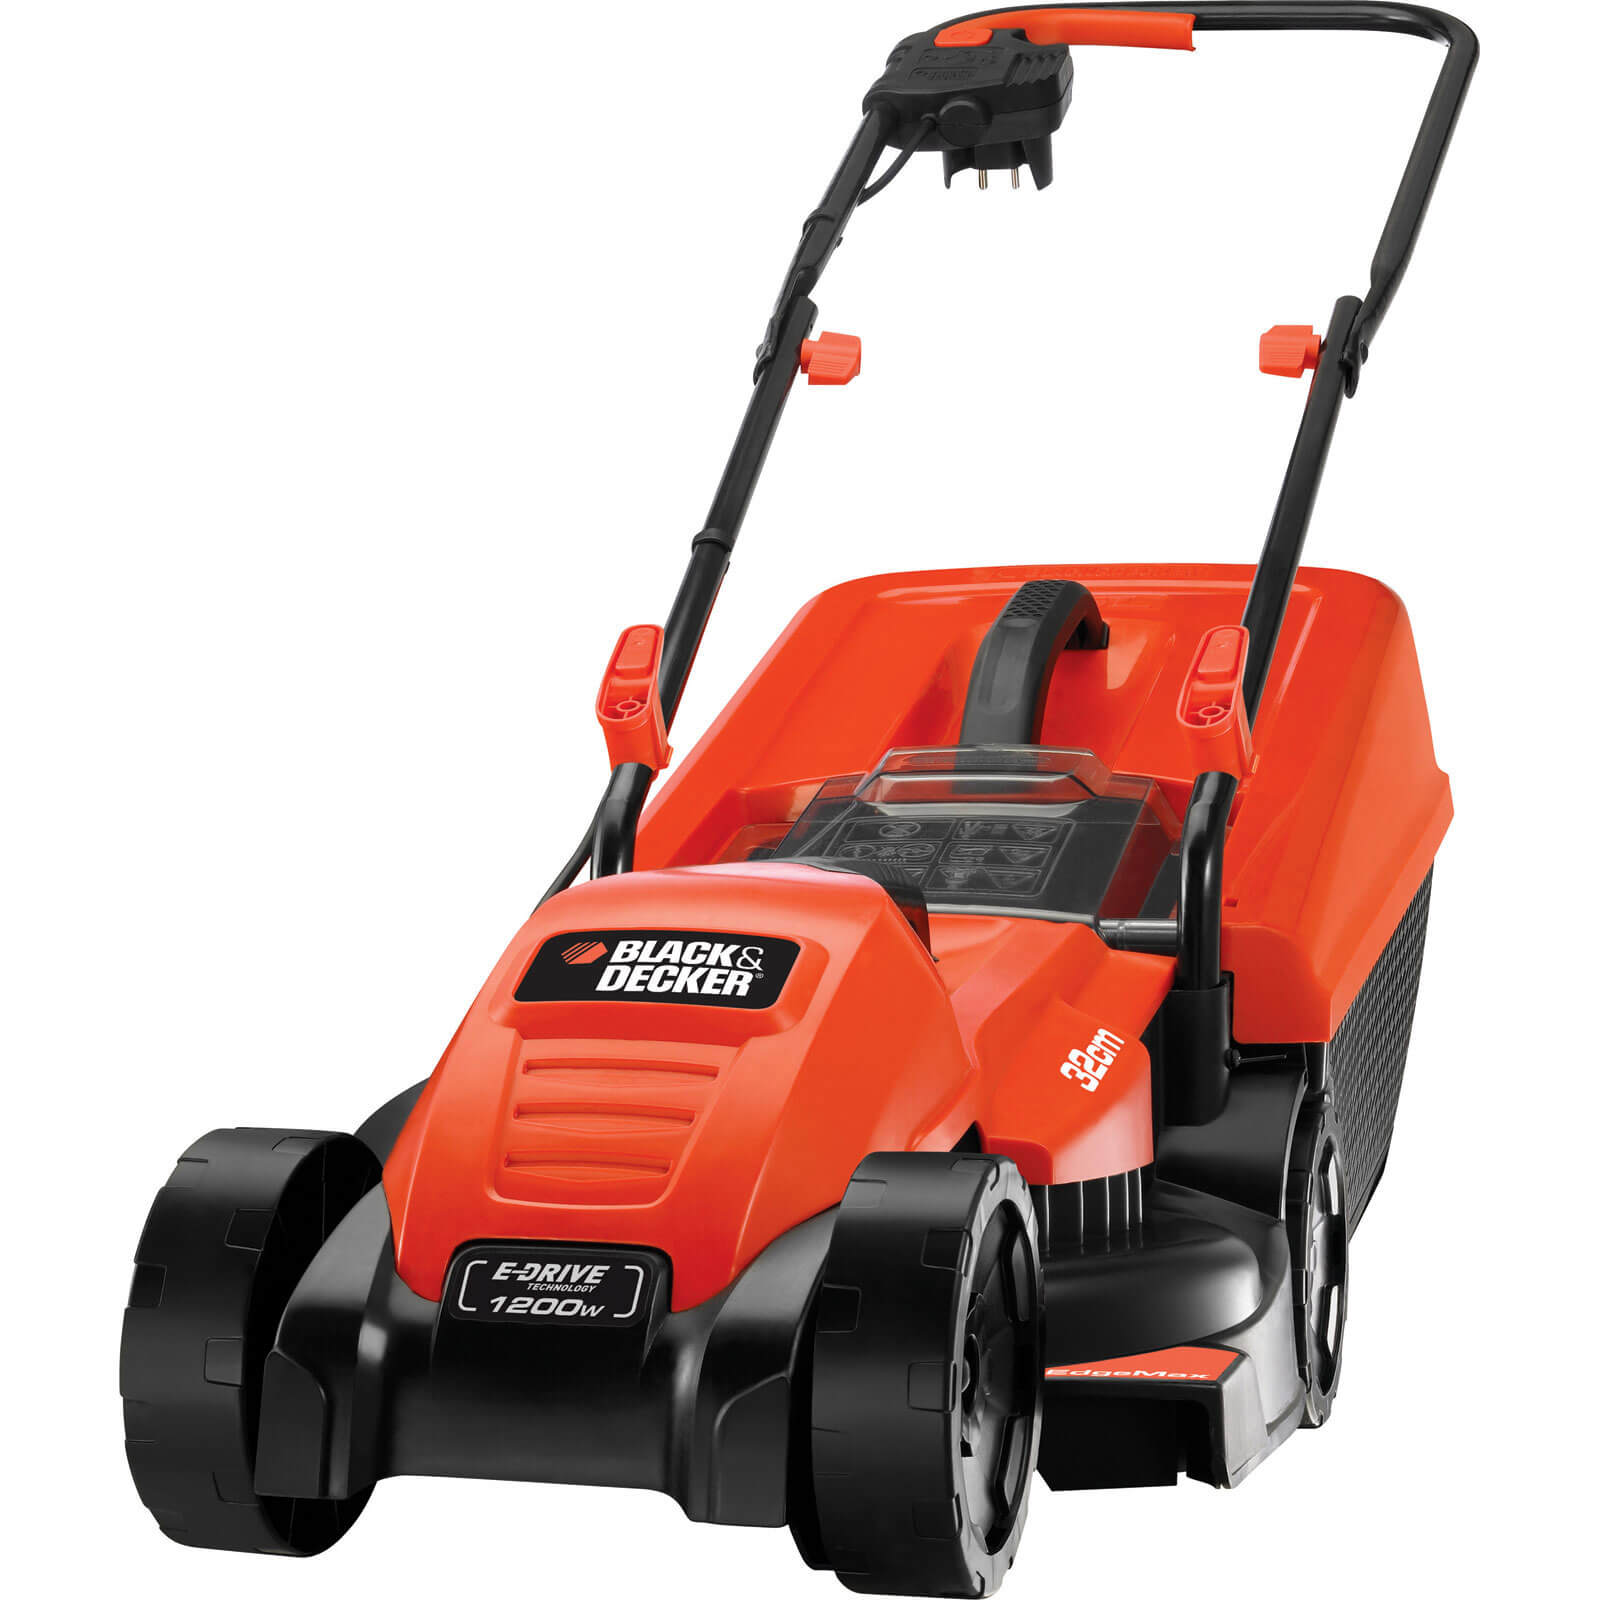 Image of Black & Decker EMAX32S Rotary Lawnmower 320mm 240v